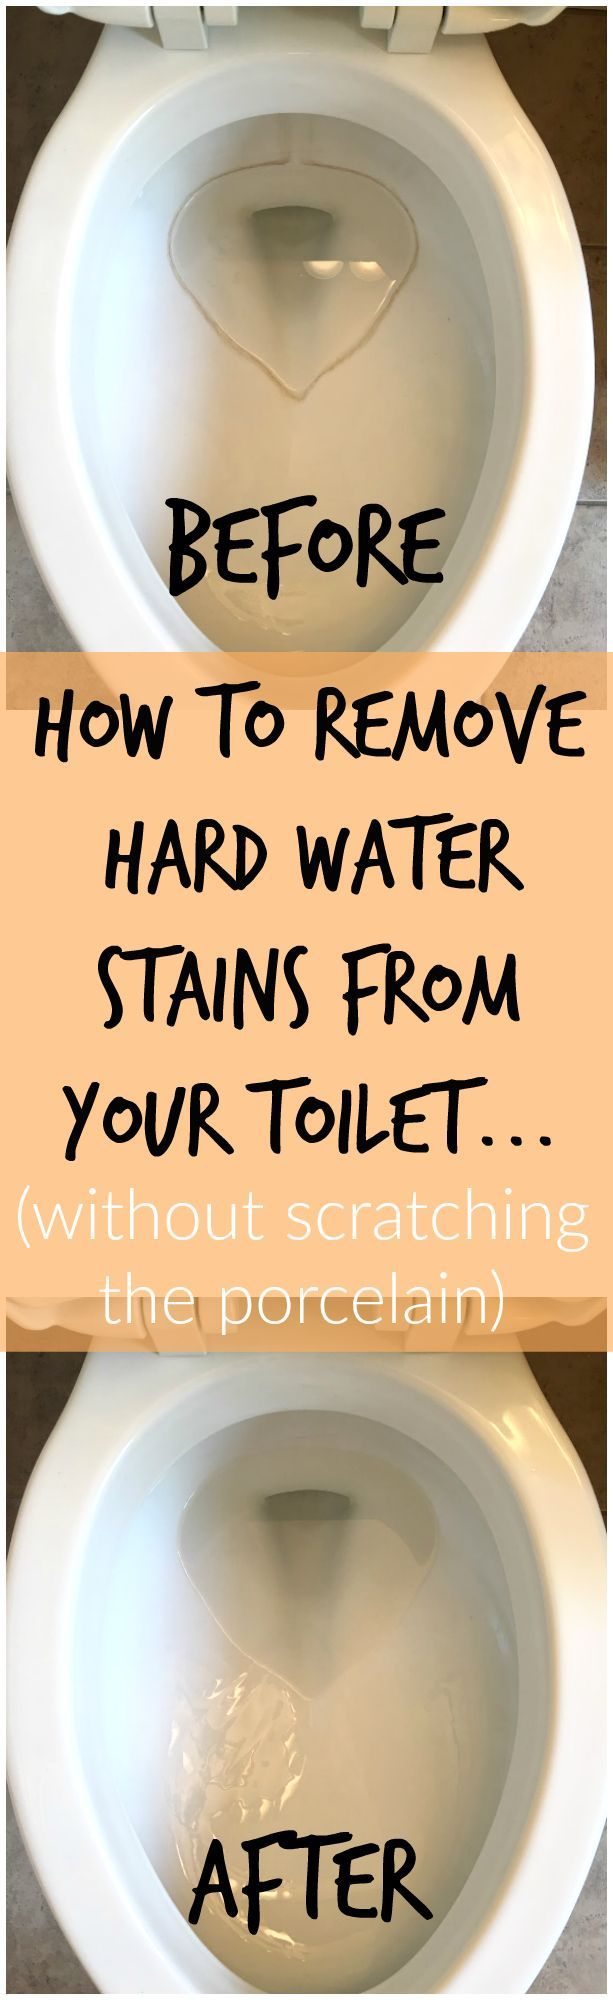 Nov 16 How To Remove Hard Water Stains From Toilets